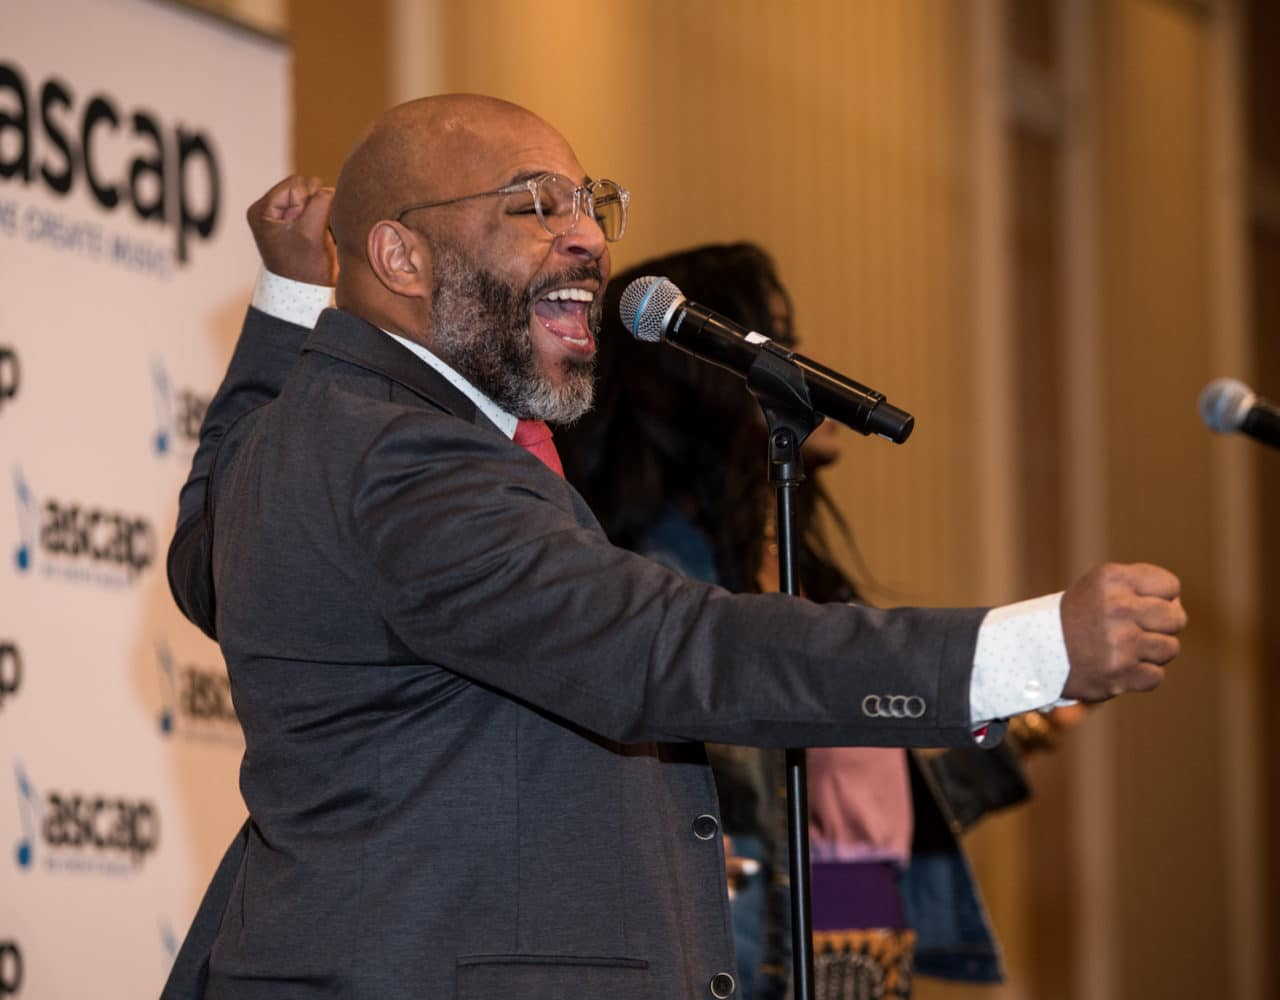 ASCAP'S Morning Glory Breakfast Celebrates Gospel Music Songwriters